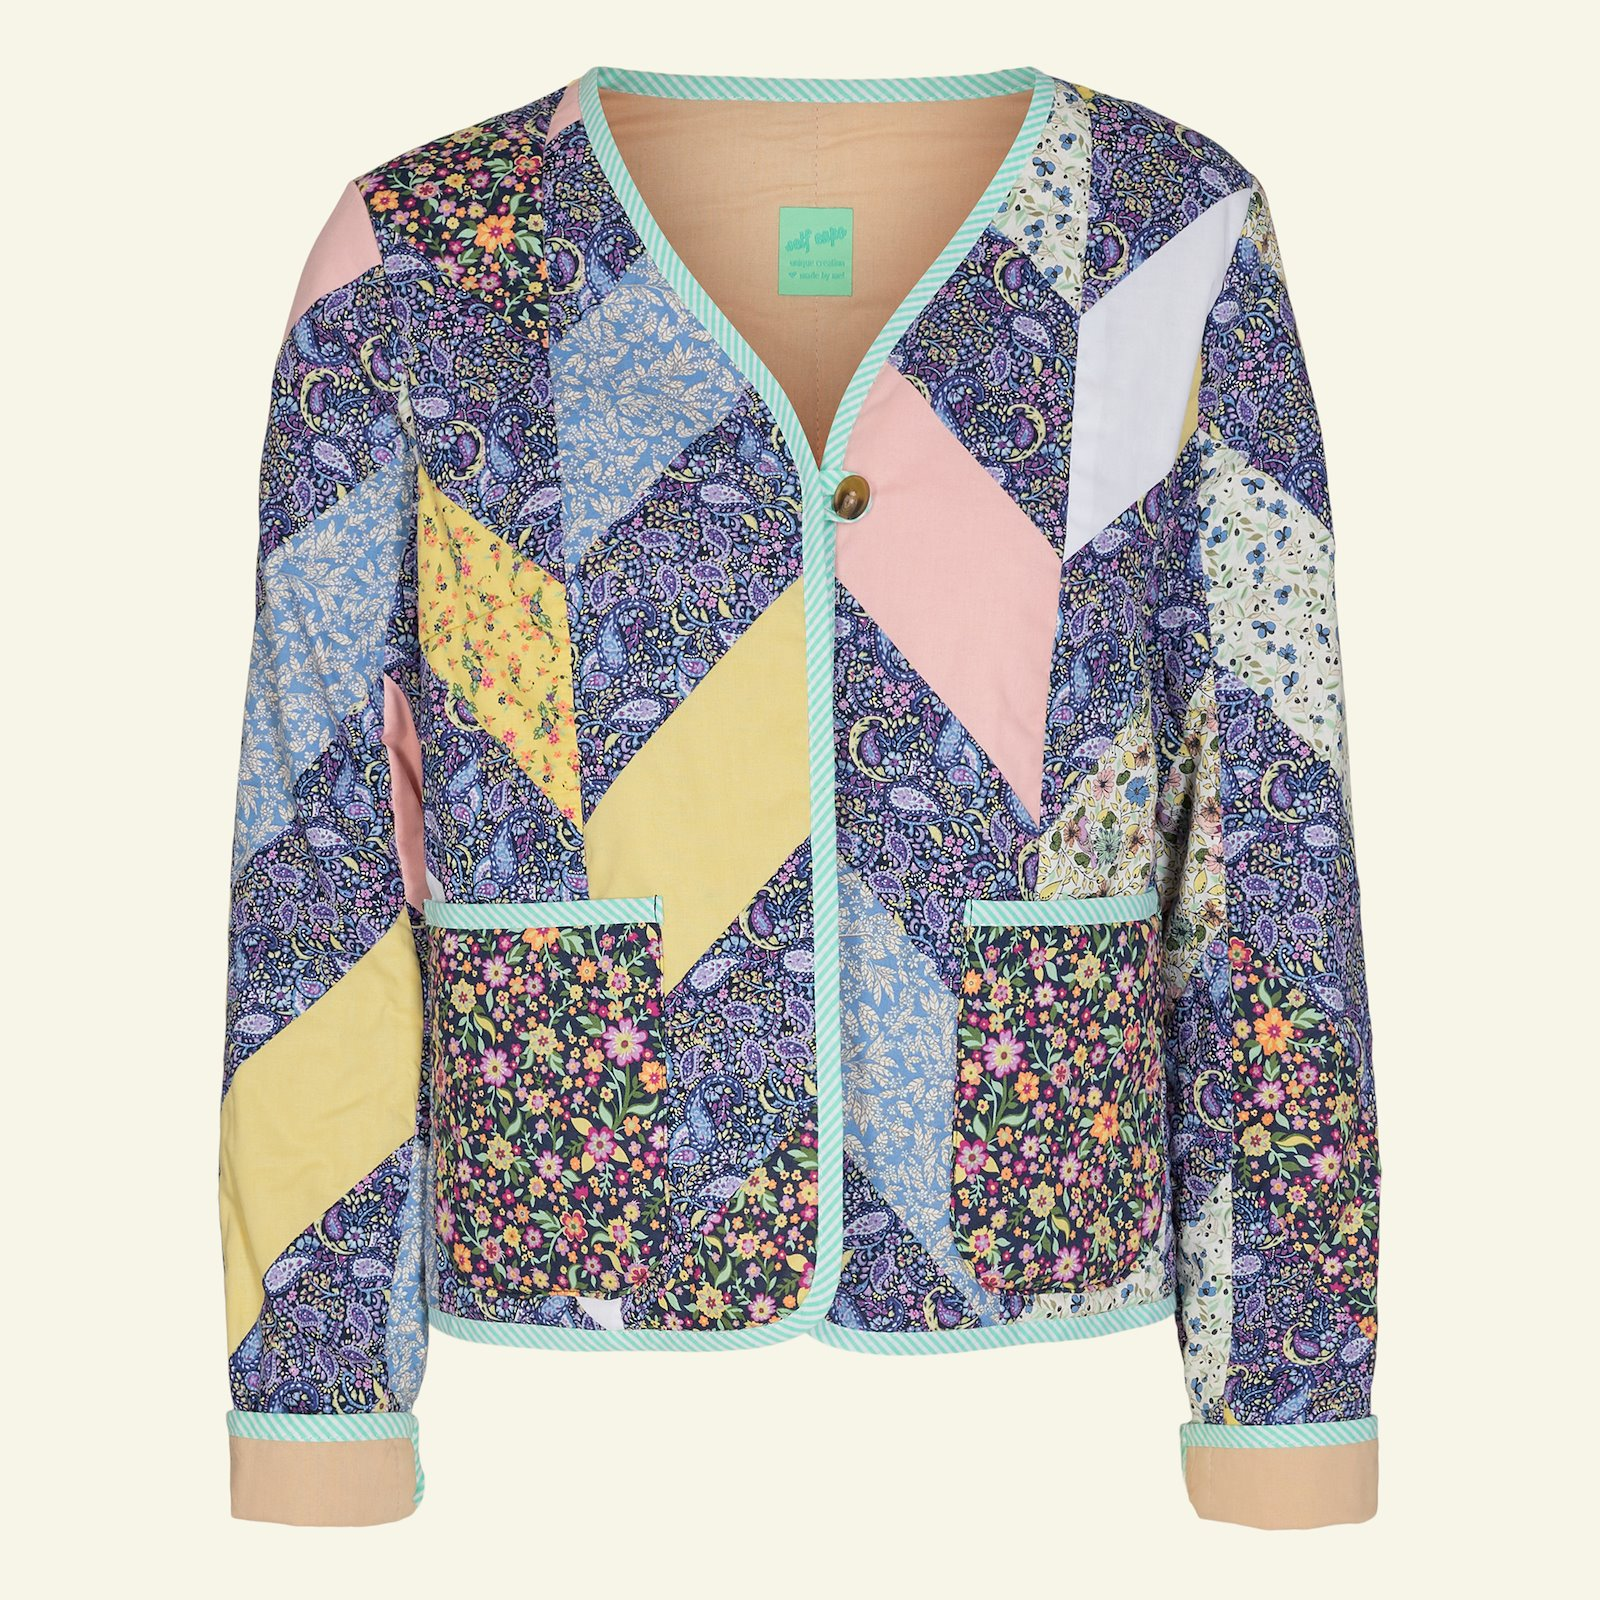 Quilted jacket and waistcoat p24047_852365_852363_852364_852362_852359_852366_4358_4201_4357_64108_sskit